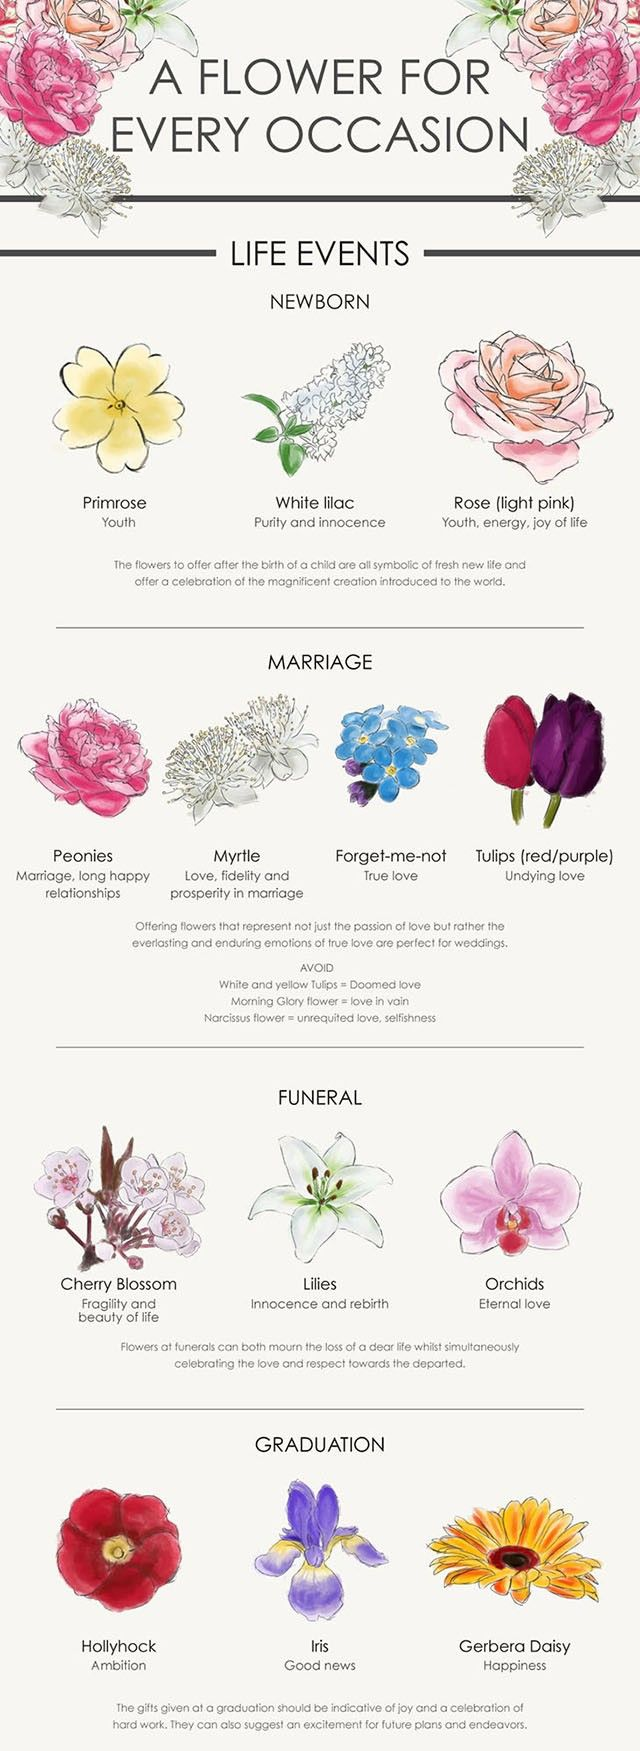 Flower for every occasion meanings pinterest flowers flower flower for every occasion izmirmasajfo